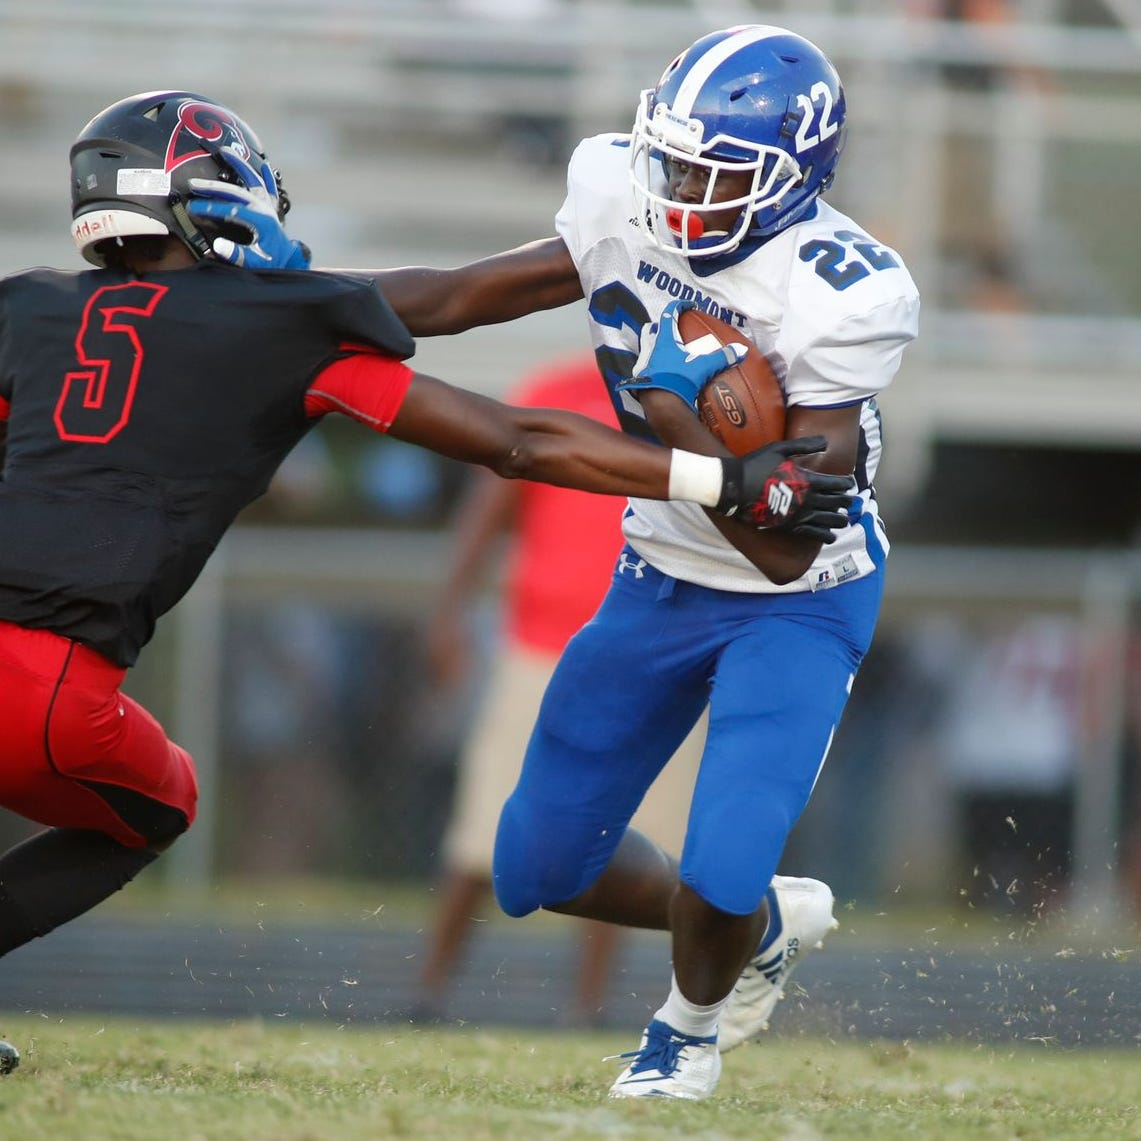 Woodmont's leading rusher, sophomore Joshua Kamoto (22), has gained 573 yards and scored seven touchdowns.